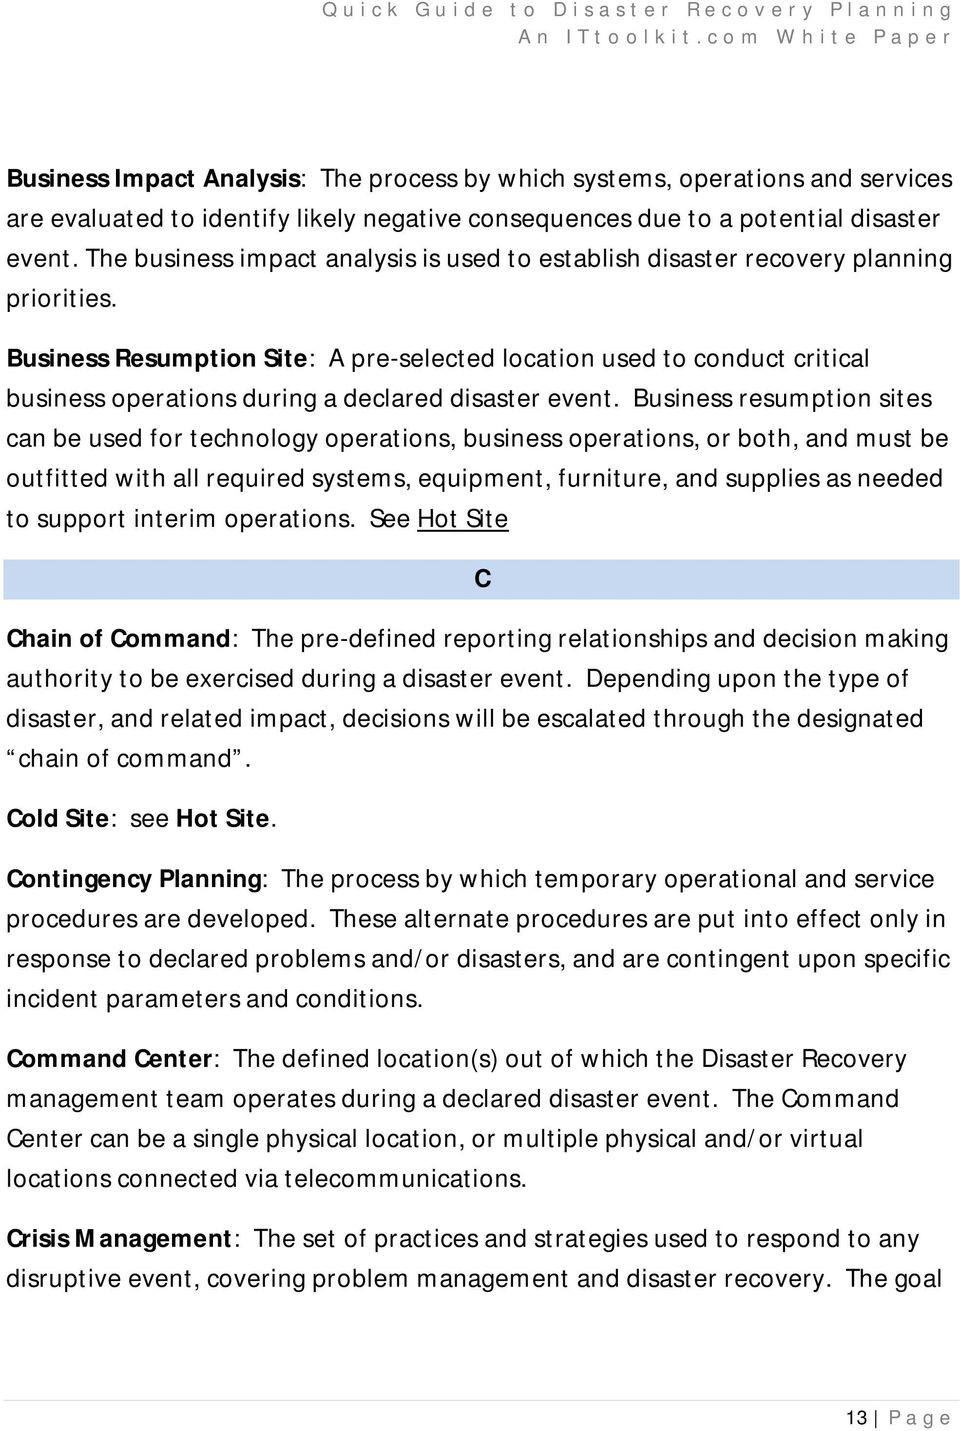 Business Resumption Site: A pre-selected location used to conduct critical business operations during a declared disaster event.